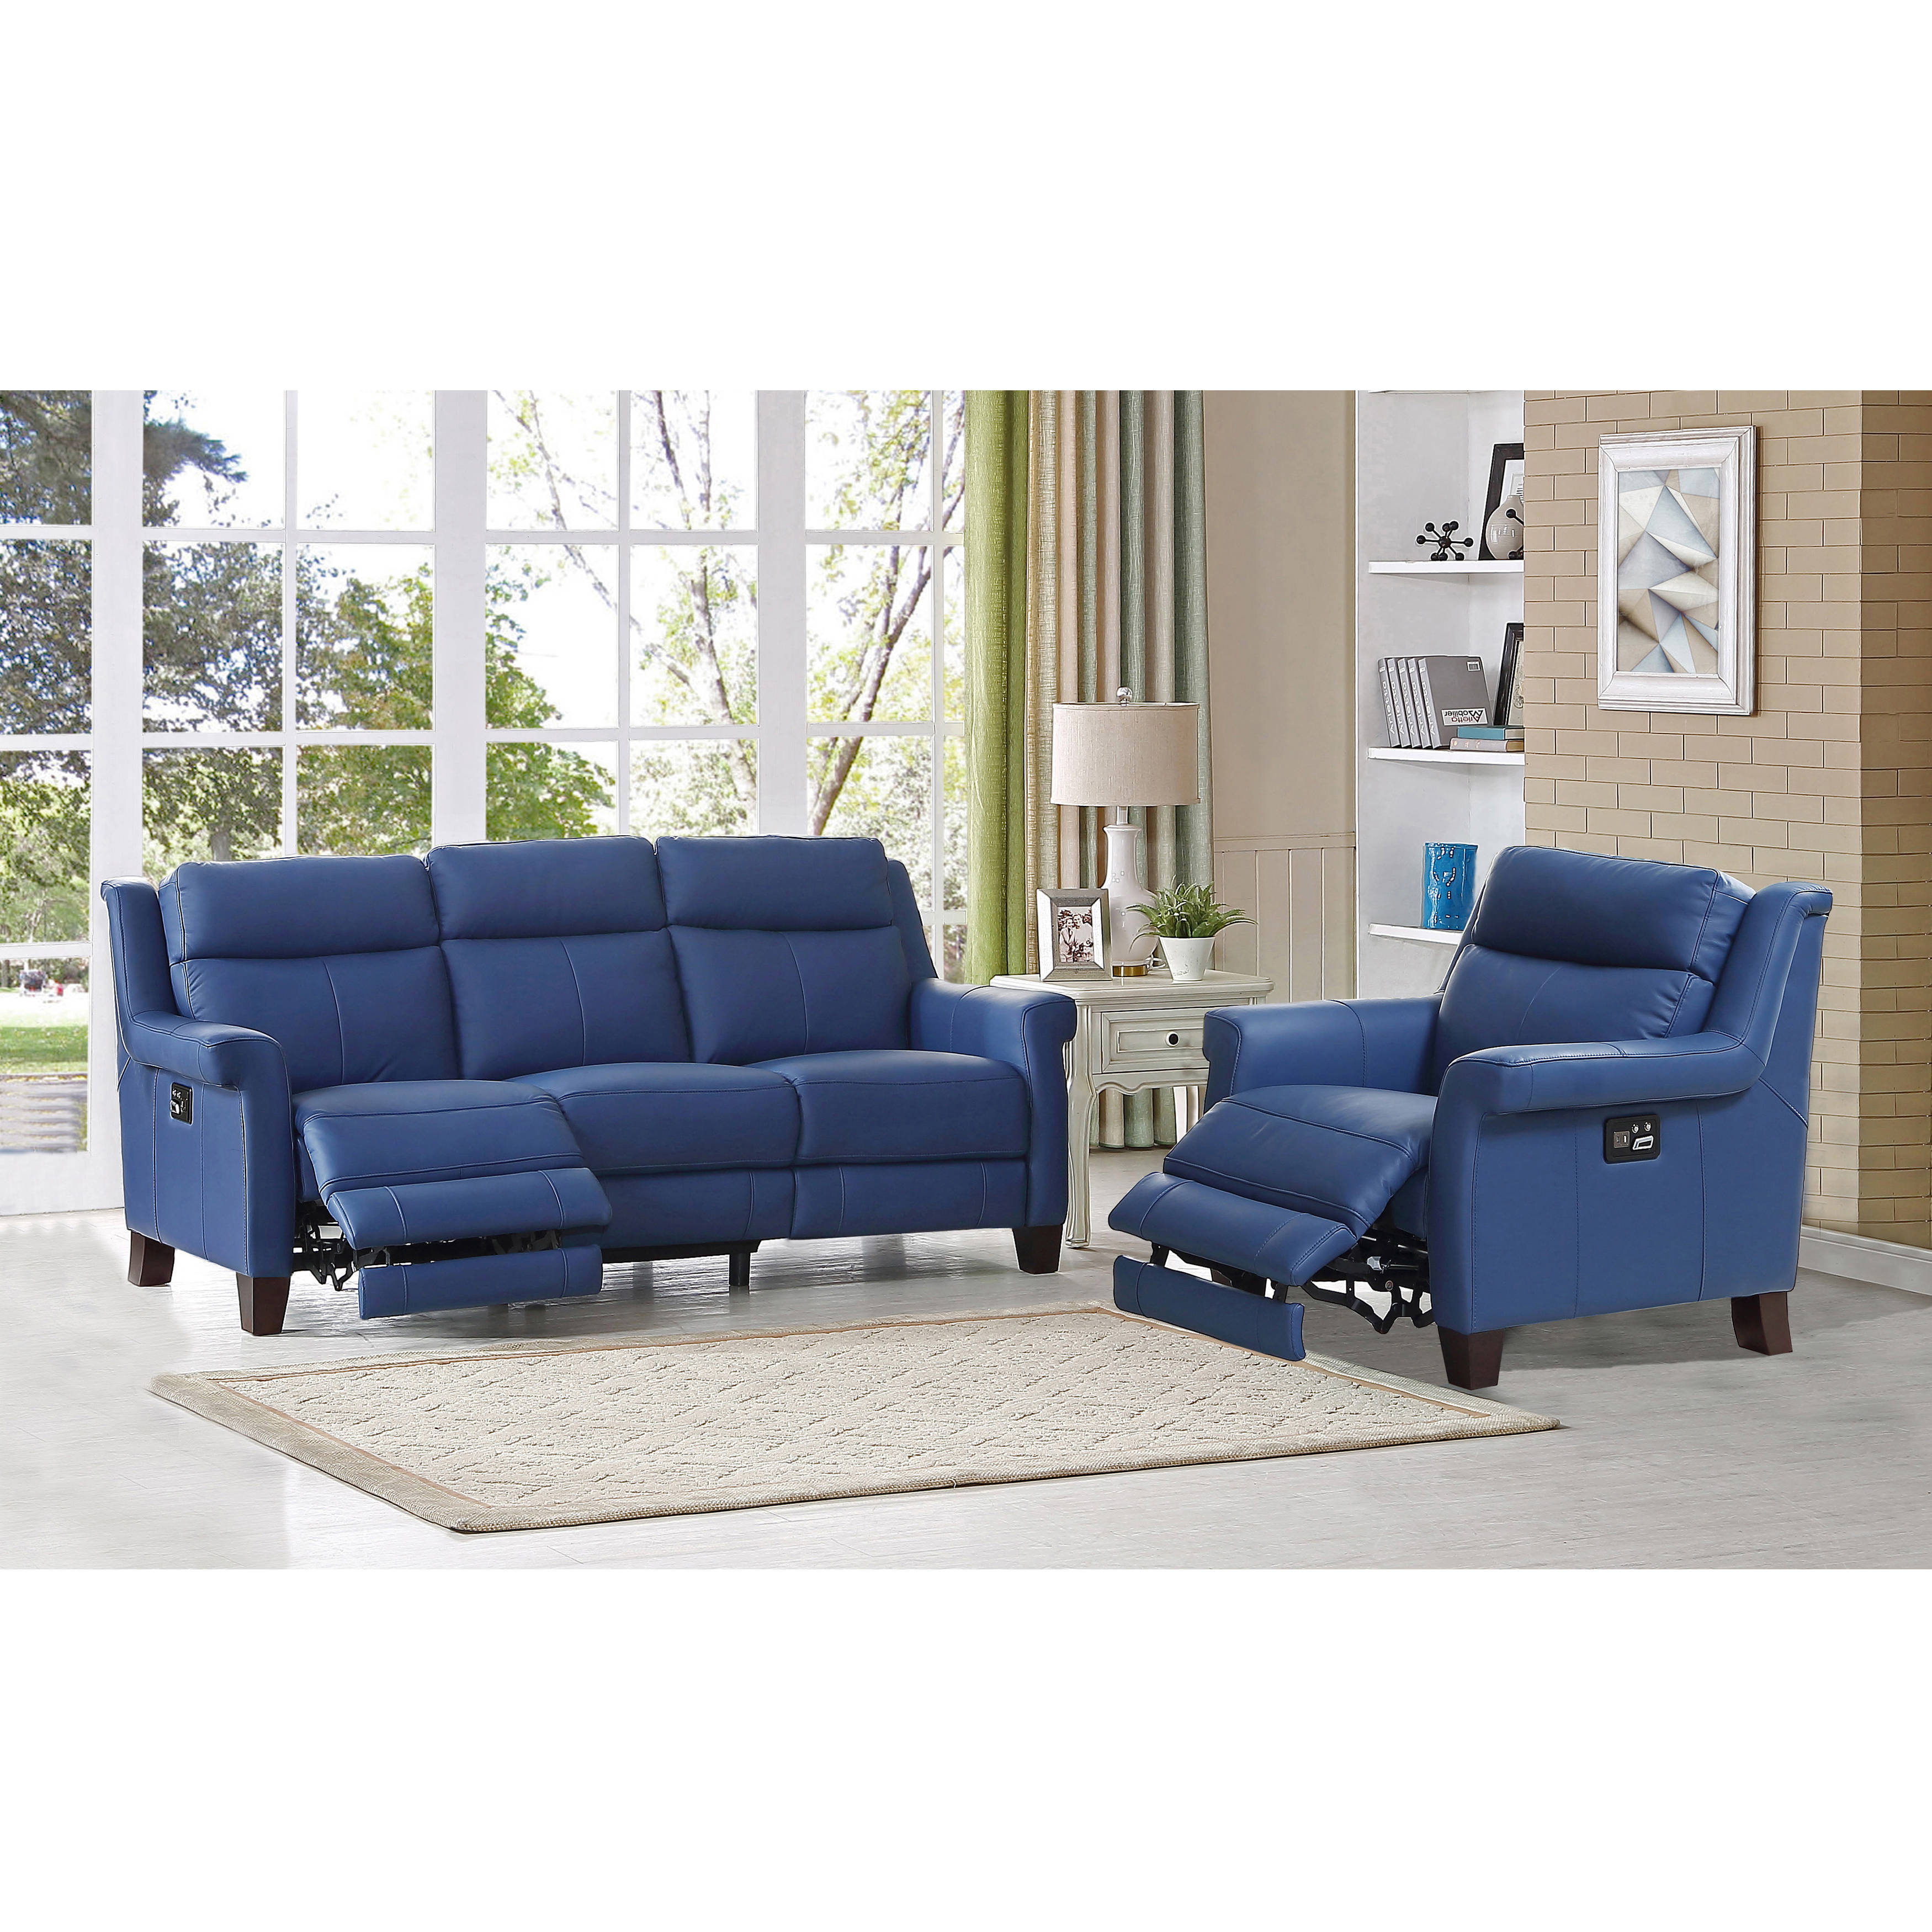 Hydeline Dolce Blue Power Reclining Sofa and Recliner Set ...